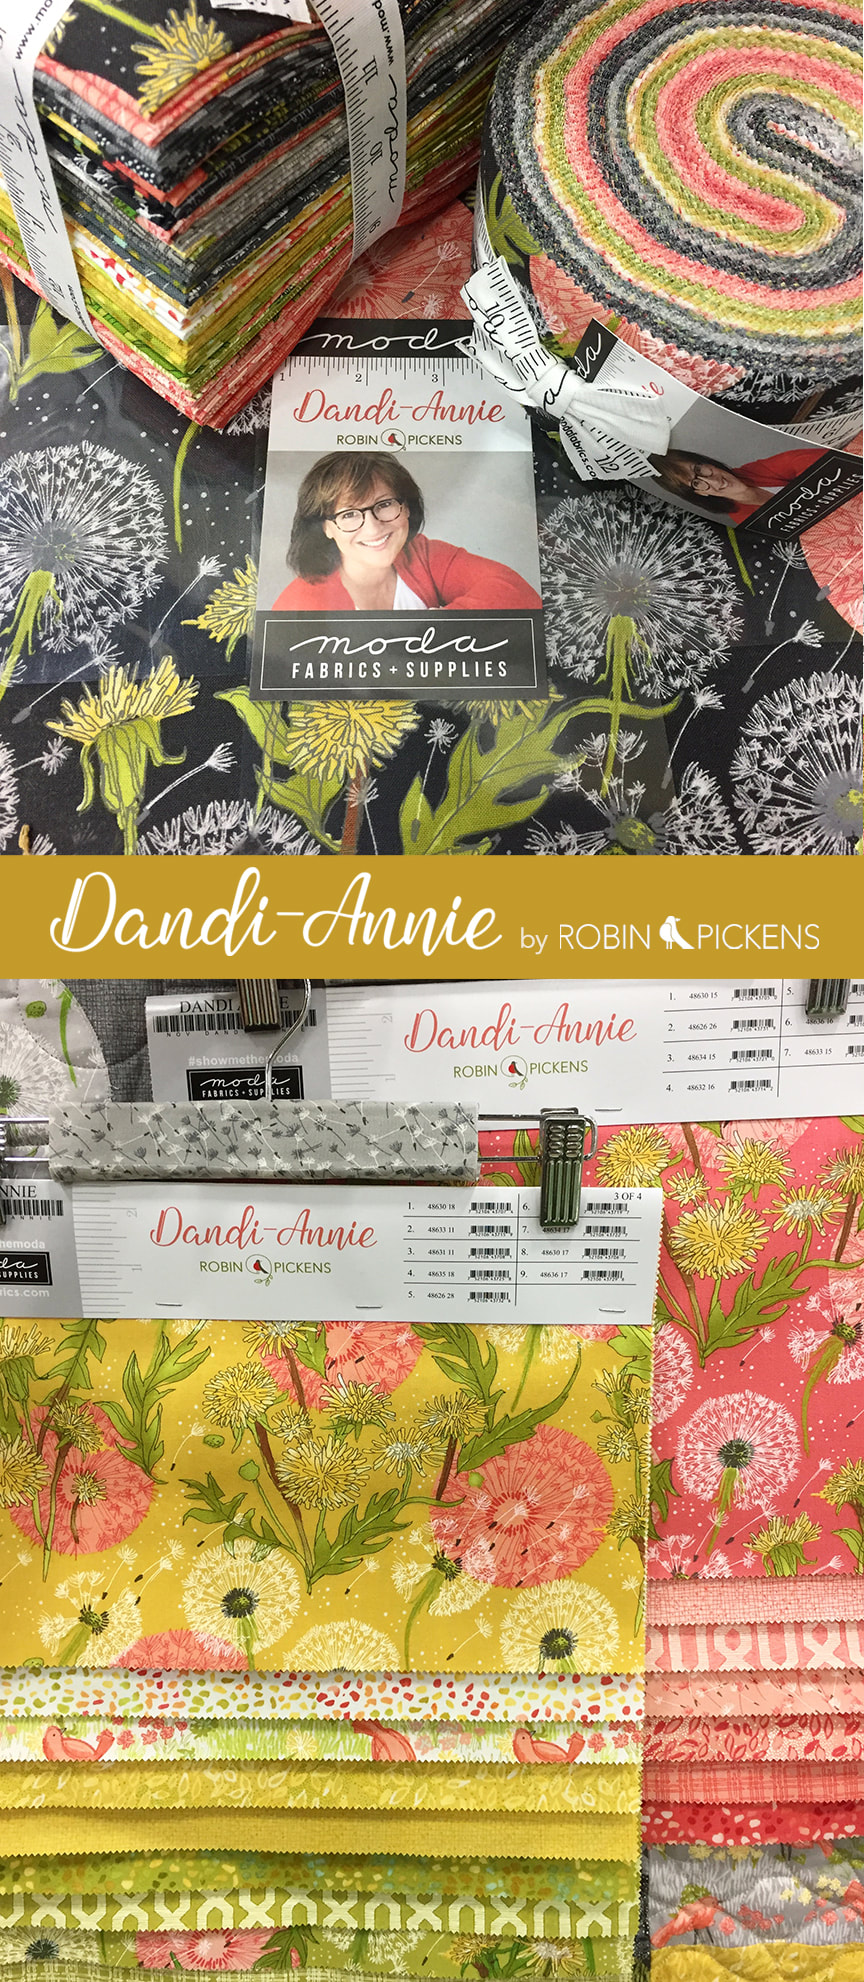 Dandi Annie fabric collection by Robin Pickens for Moda and quilting. Dandelions and birds have fun in the warm gold, green, gray and peach colors.